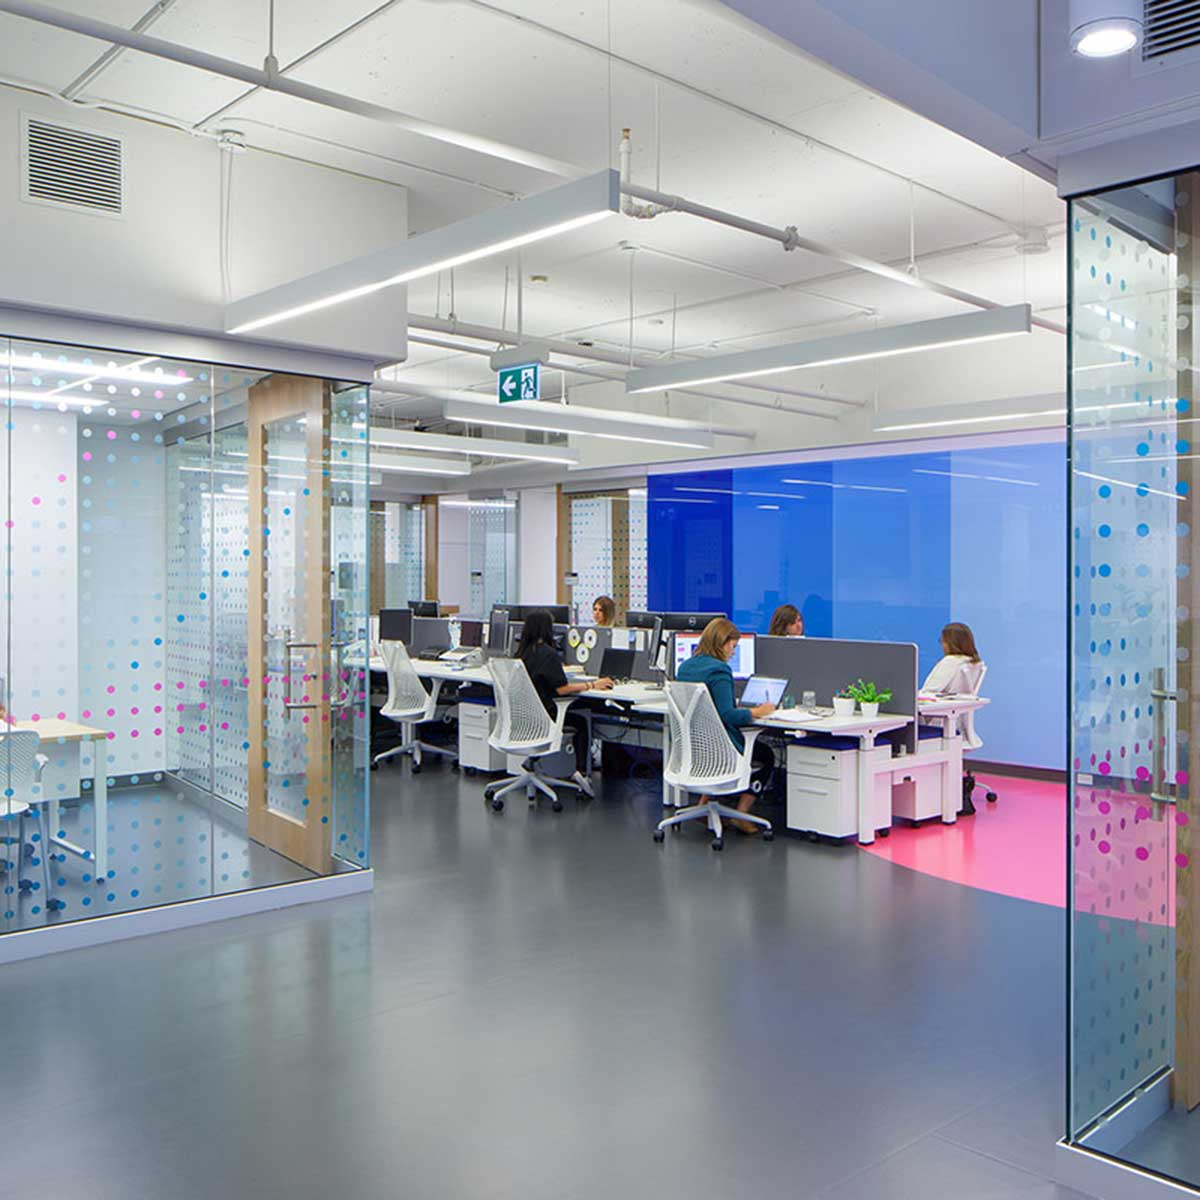 Artigo supplied their popular Kayar rubber Flooring to the Brookfield Institute. Kayar rubber is available from Chroma Global Flooring Solutions